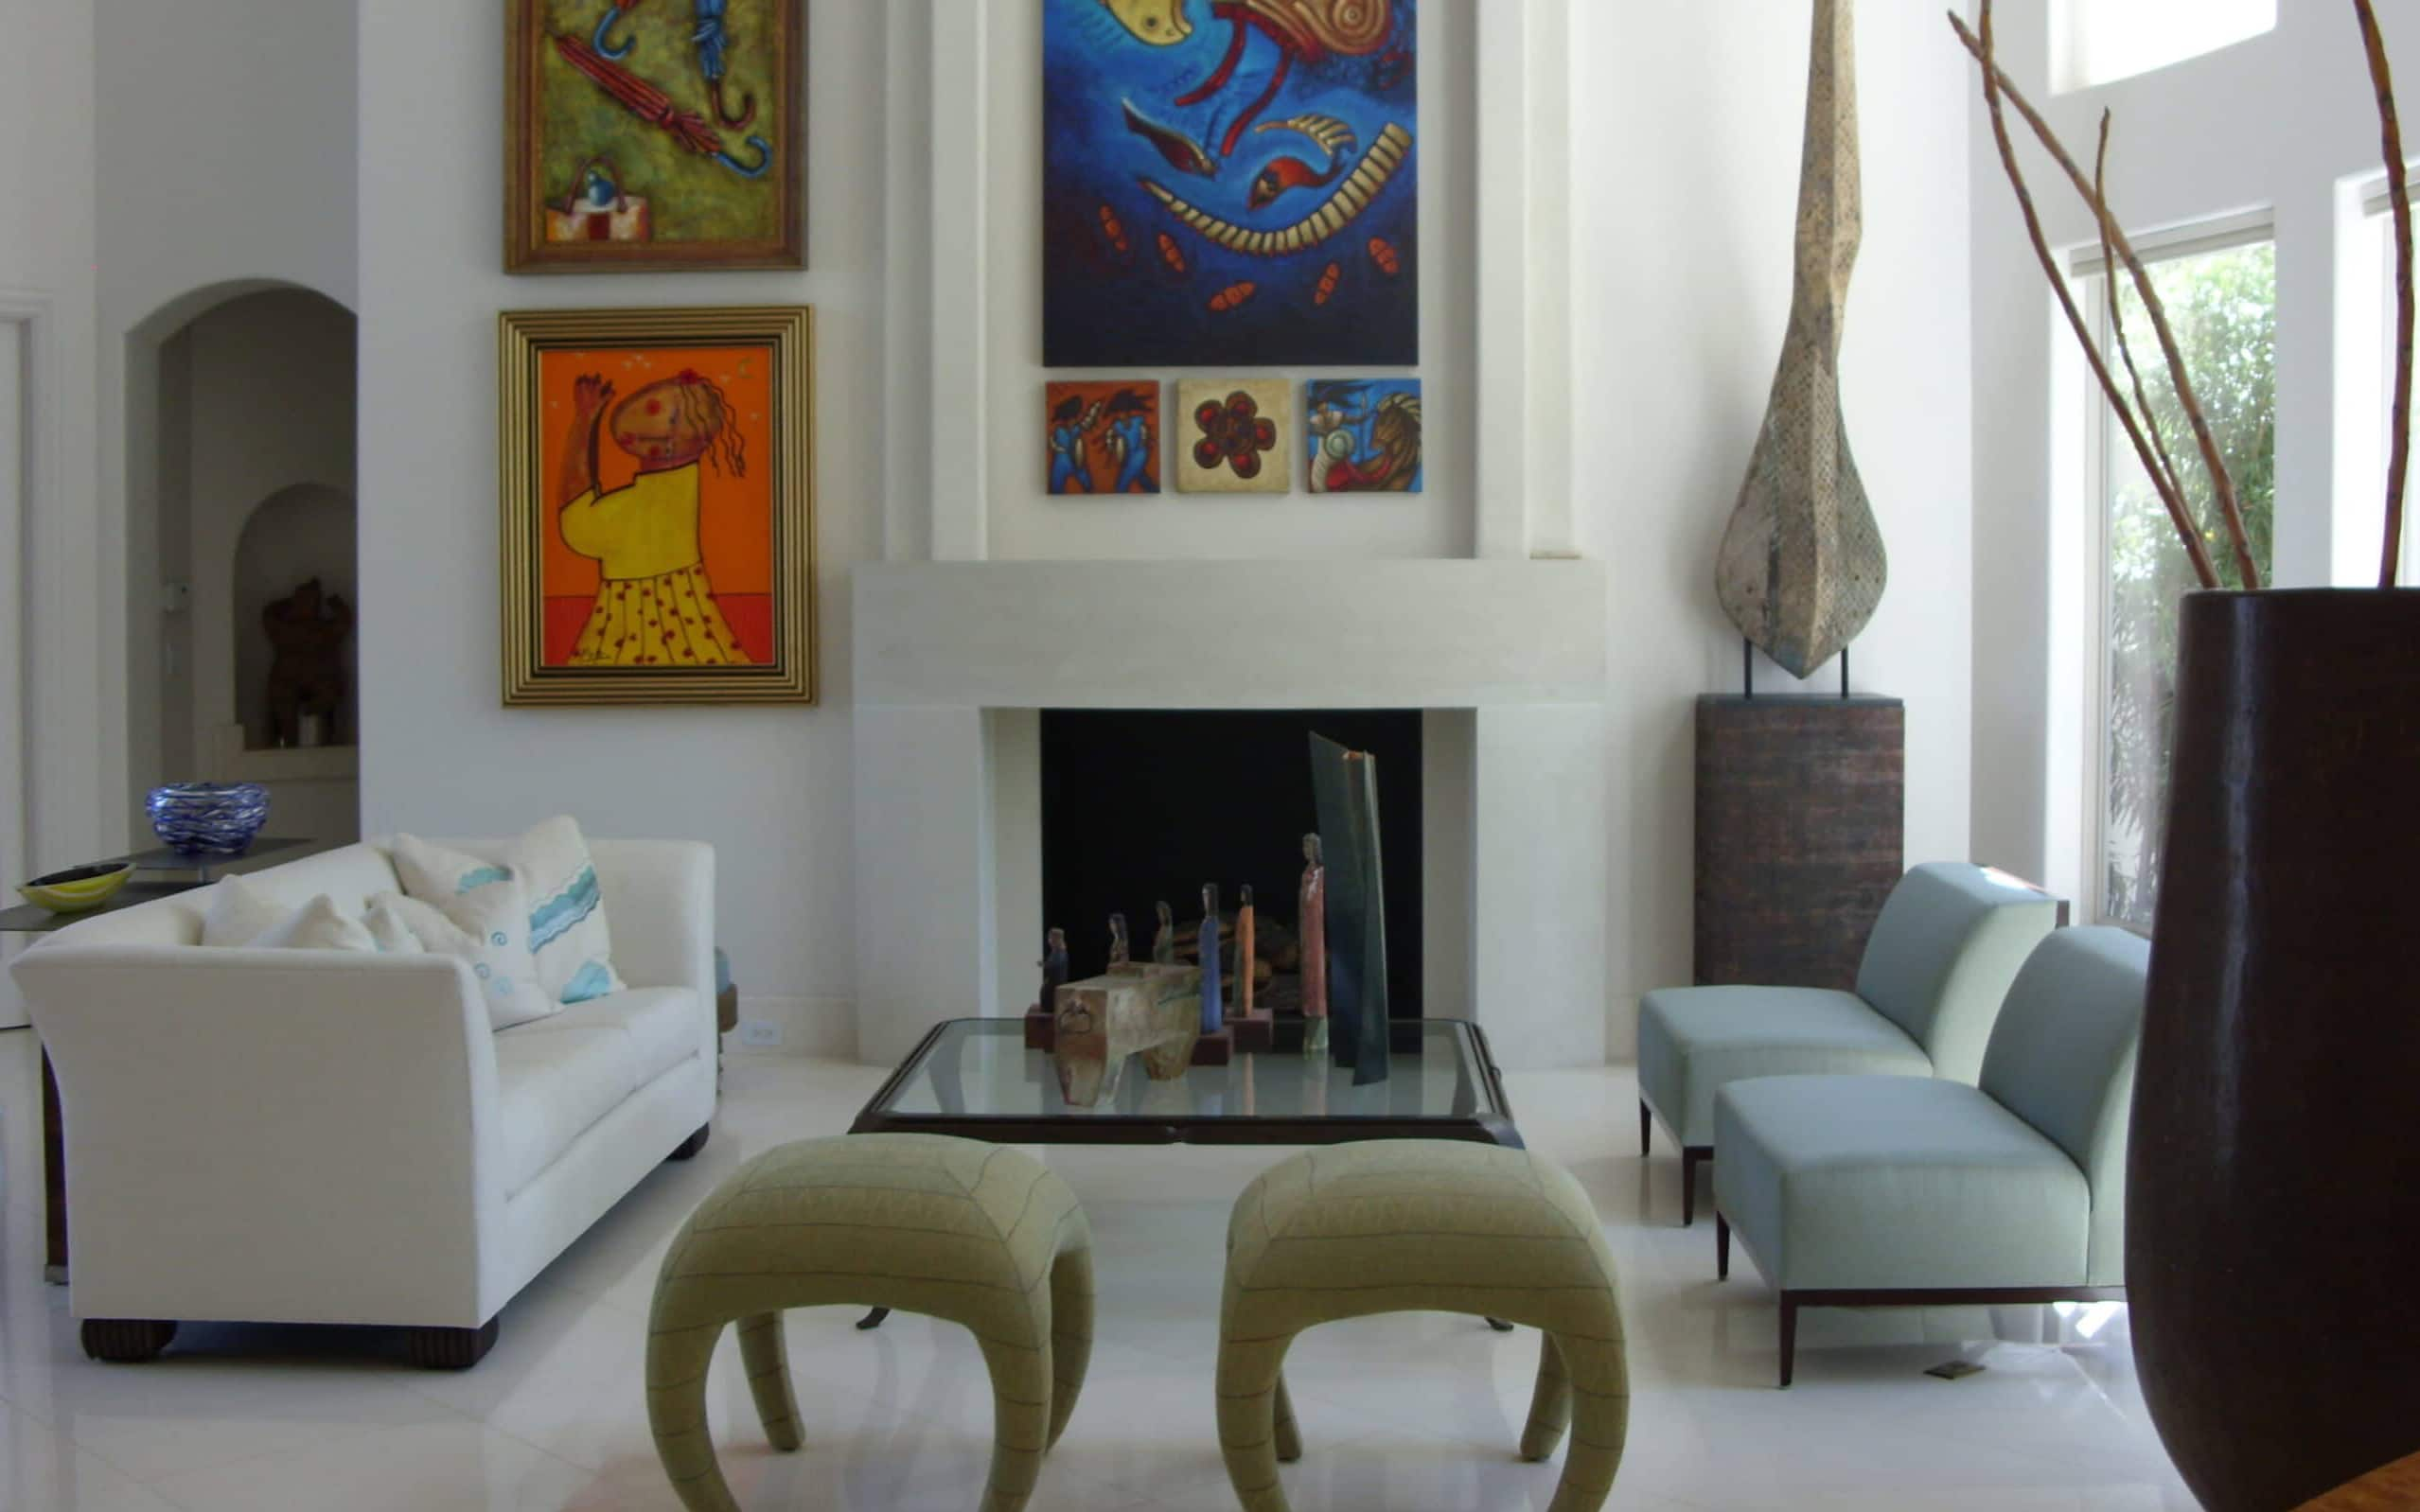 Off white walls make the art pop against a serene backdrop of pastels on the upholstery